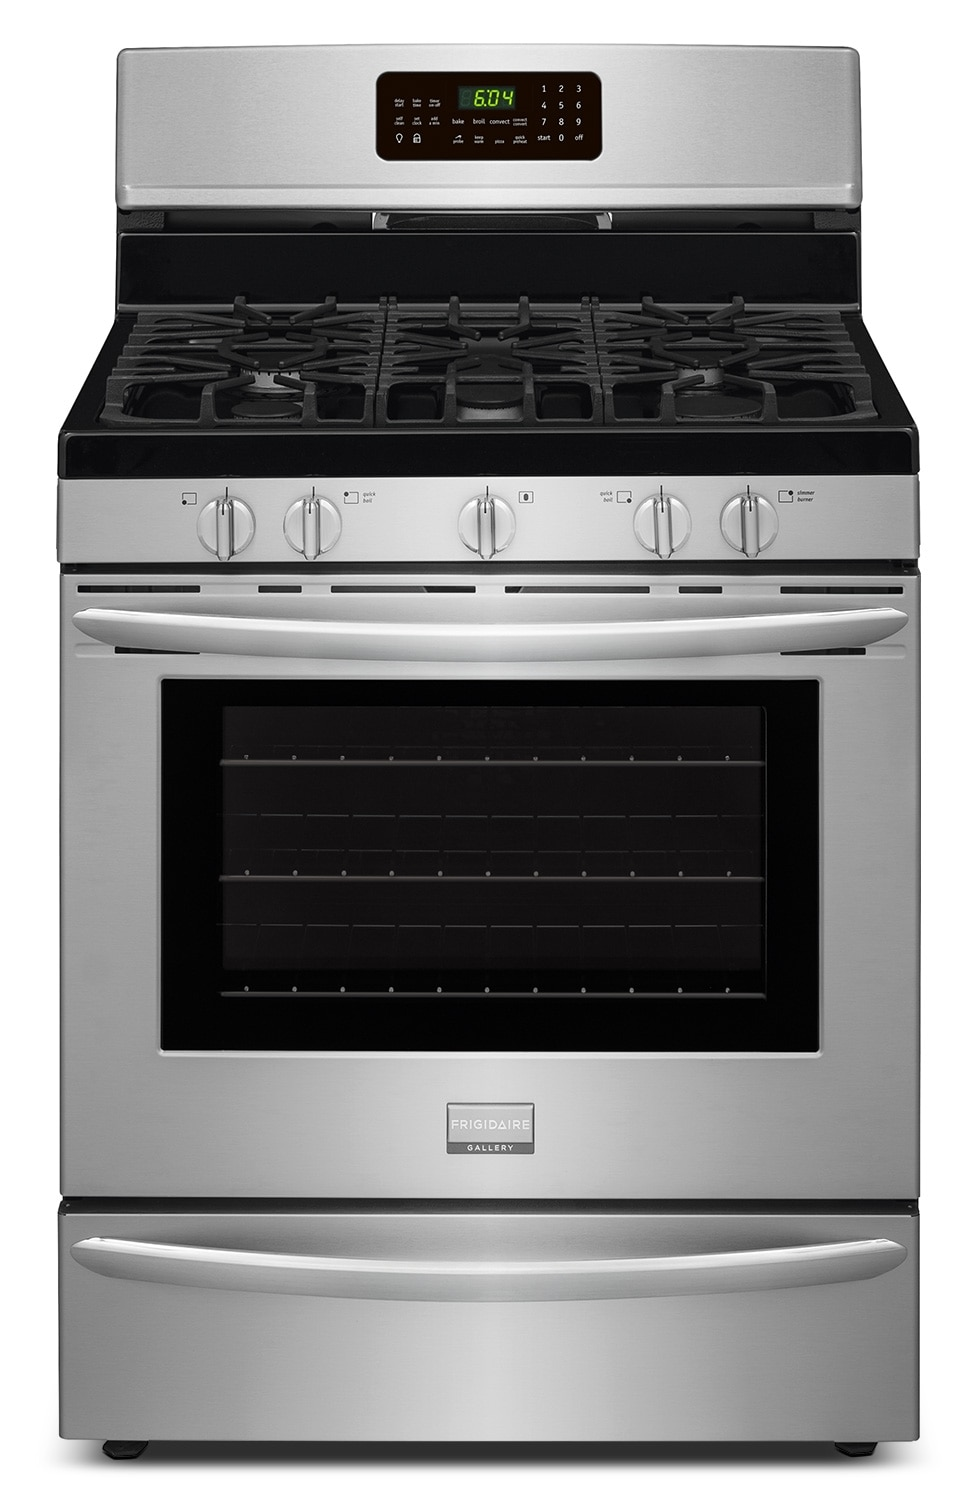 Cooking Products - Frigidaire Gallery Stainless Steel Freestanding Gas Convection Range (5.0 Cu. Ft.) - FGGF3058RF